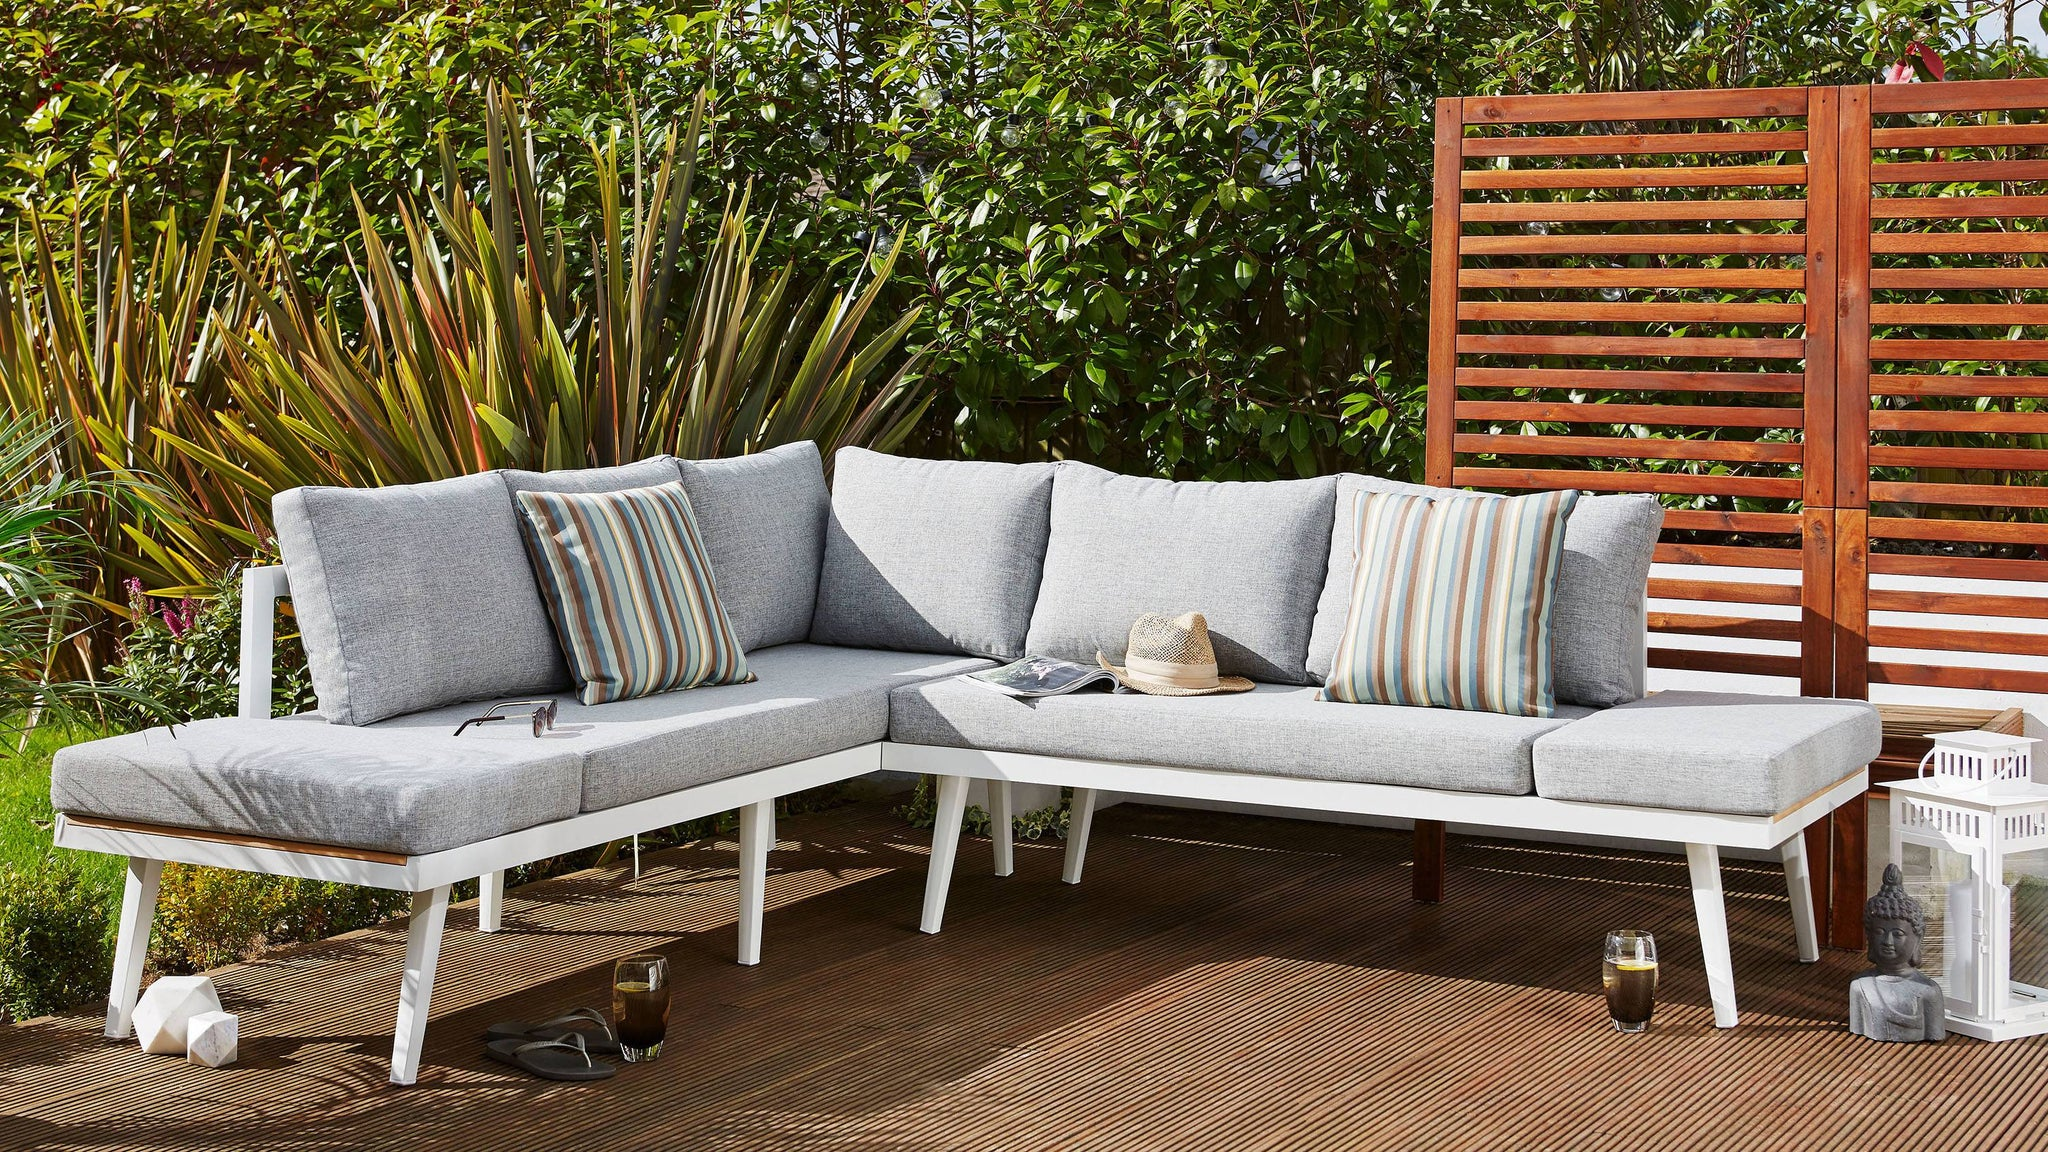 Garden bench dining sets